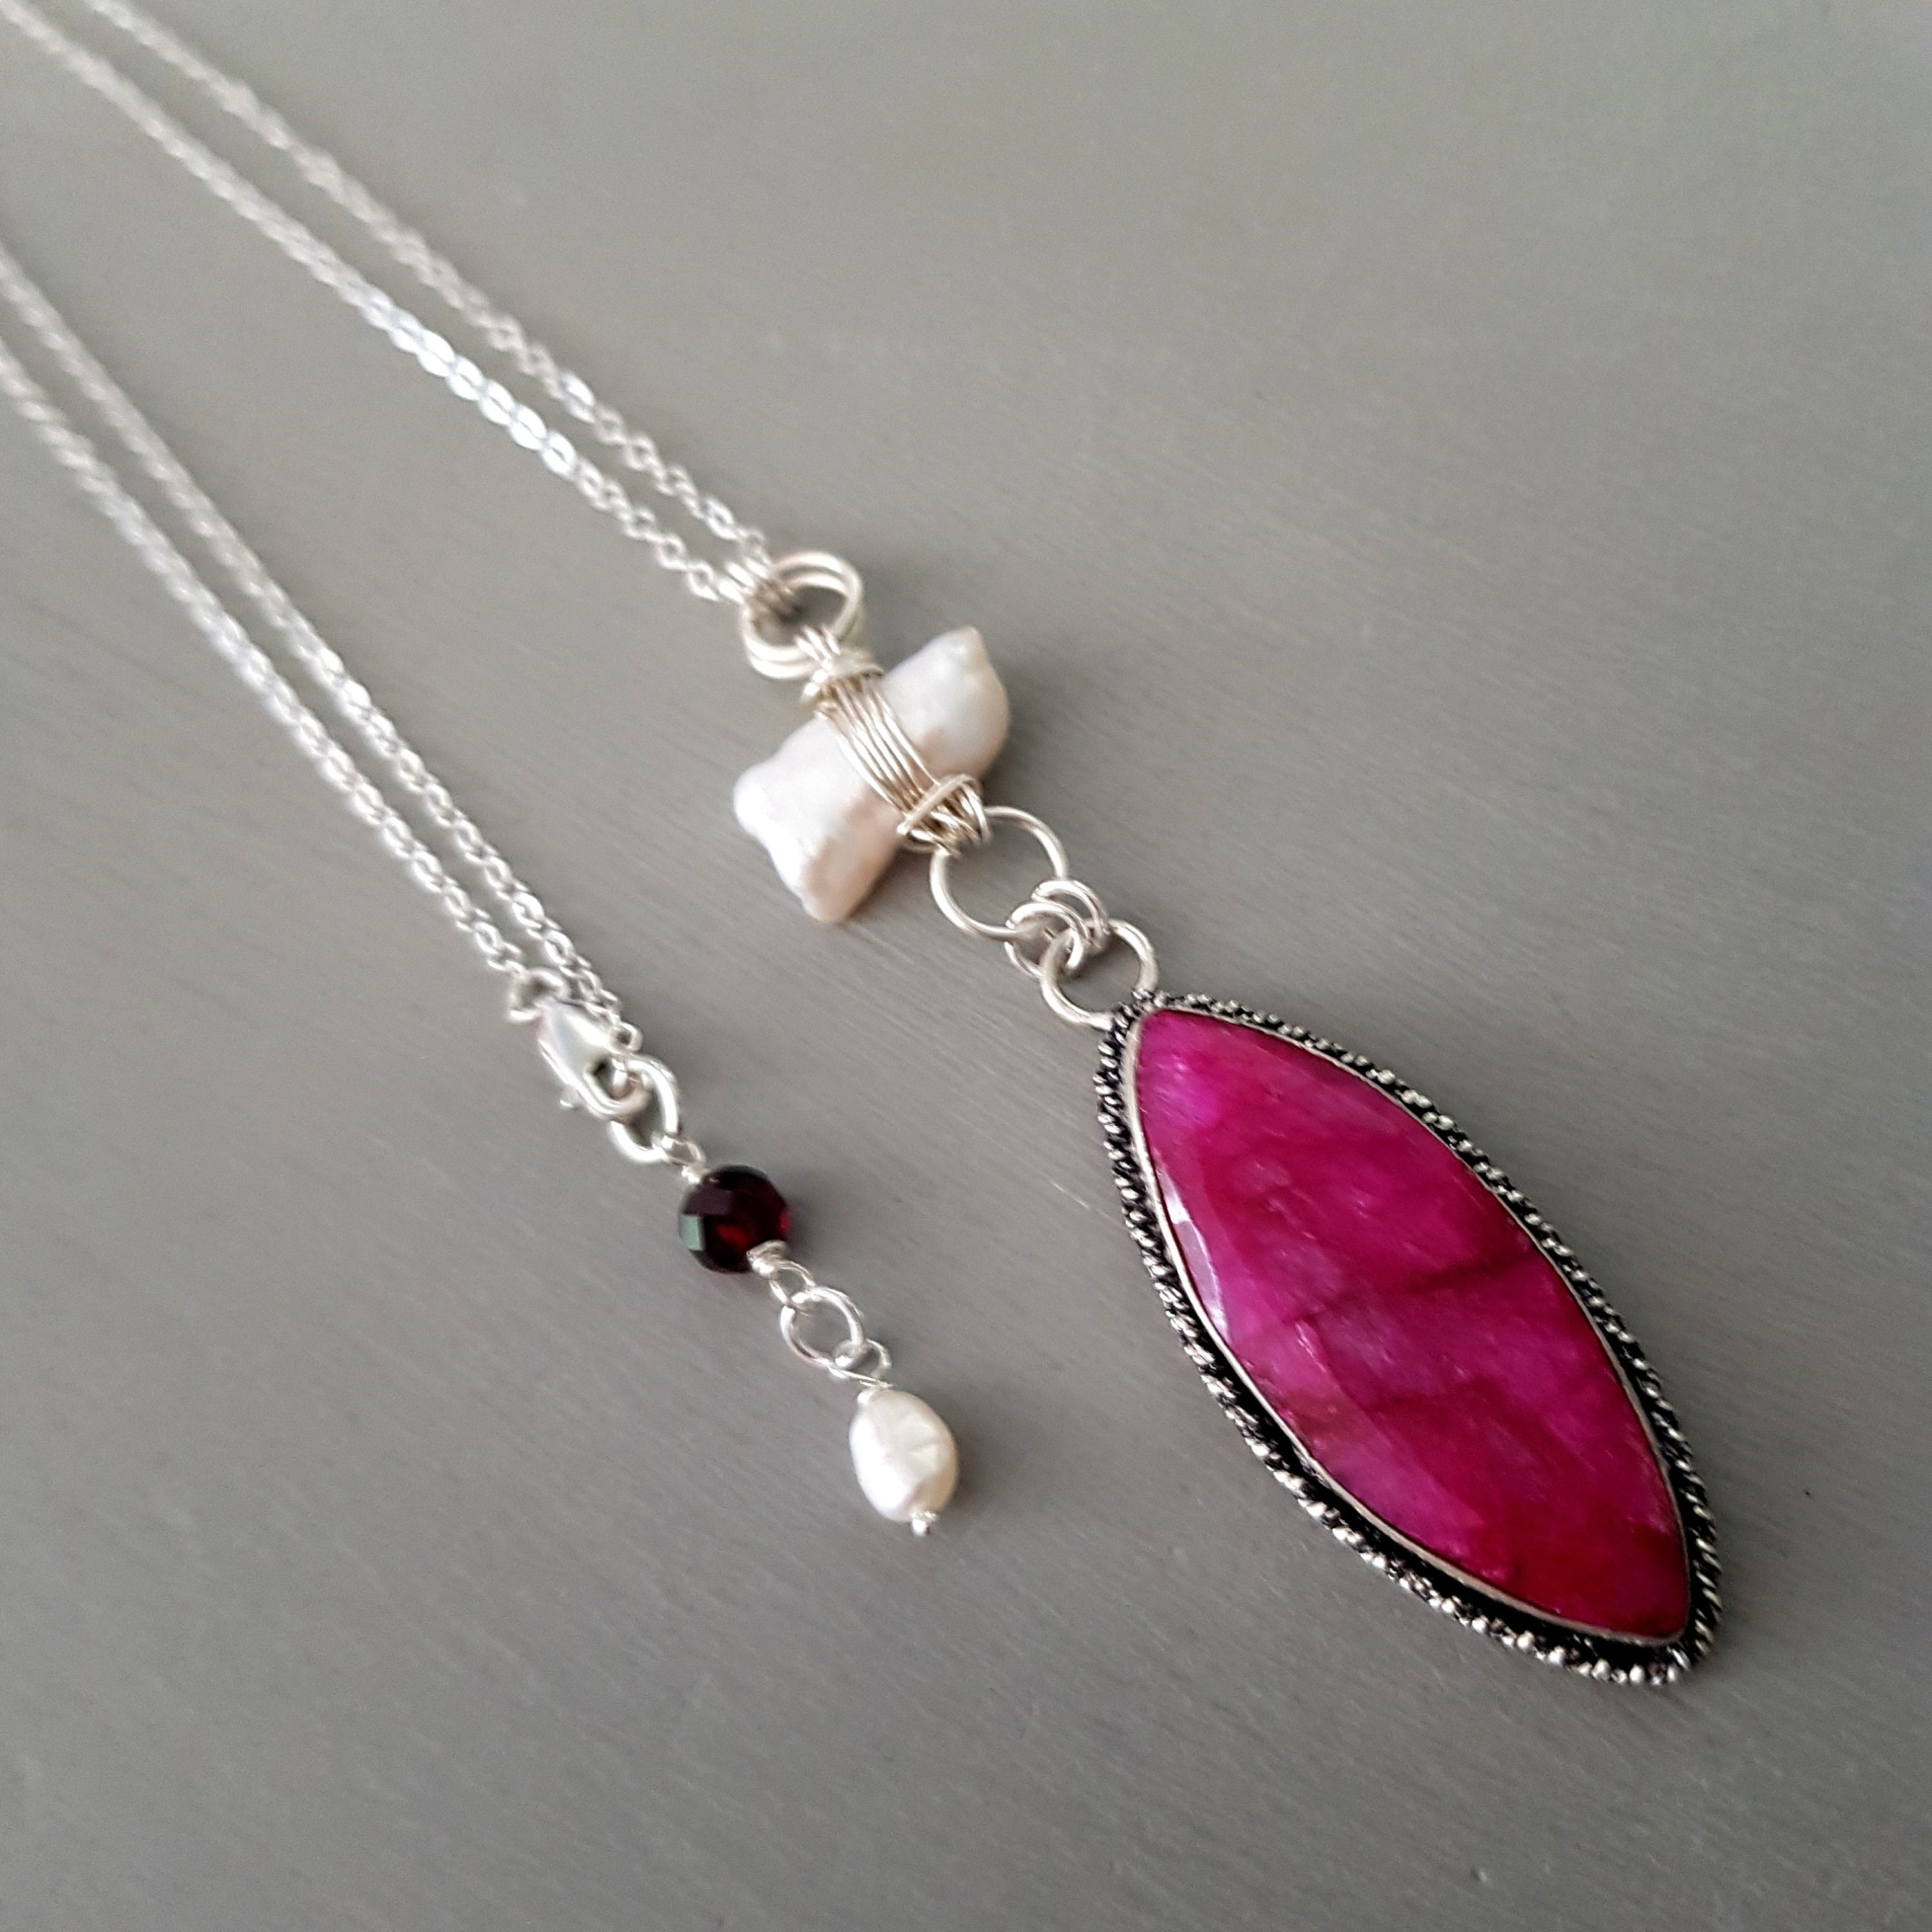 Sterling Silver Wire Wrapped Pendant gemstone Pendant Ruby Necklace Handcrafted Ruby Jewelry July birthstone Natural Ruby Pendant